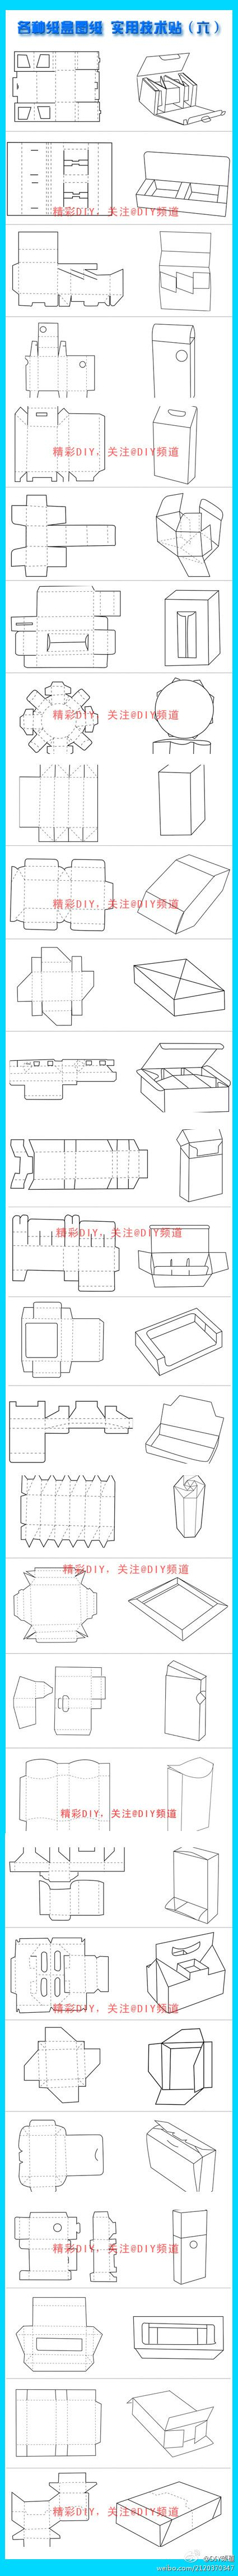 DIY纸盒子i ~,Box Templates to print for gift boxes, wedding favours, kids crafts and gift wrap ideas, printable, box , pattern,template, container,wrap, parent crafts, decor, design,paper crafts, cool teen crafts